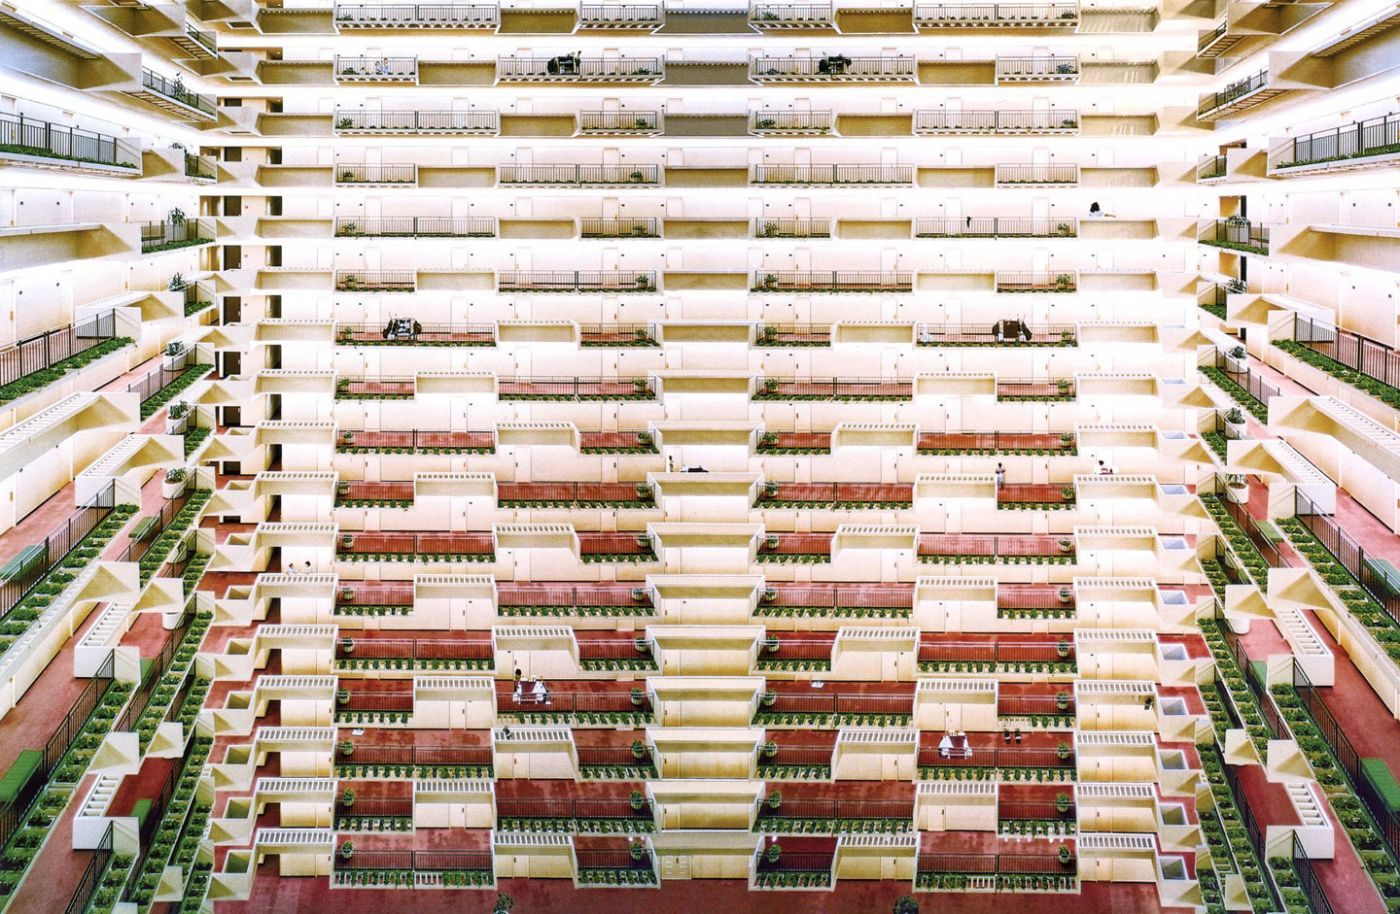 Andreas Gursky: Fotografien 1994-1998 (New)